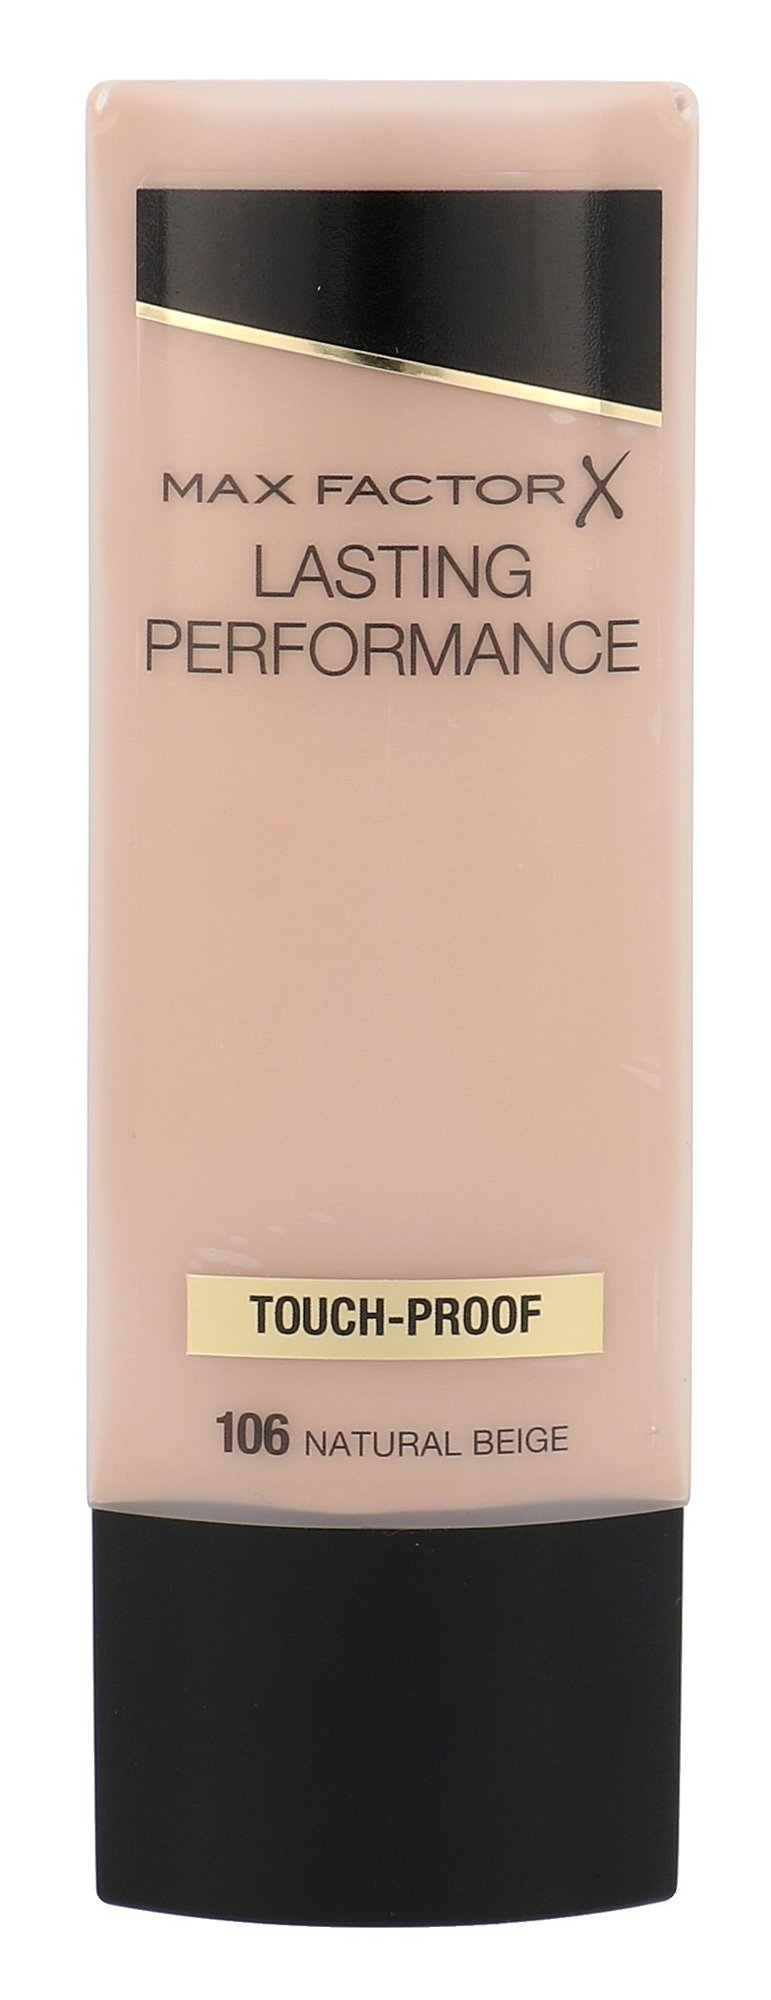 Max Factor Lasting Performance Cosmetic 35ml 106 Natural Beige